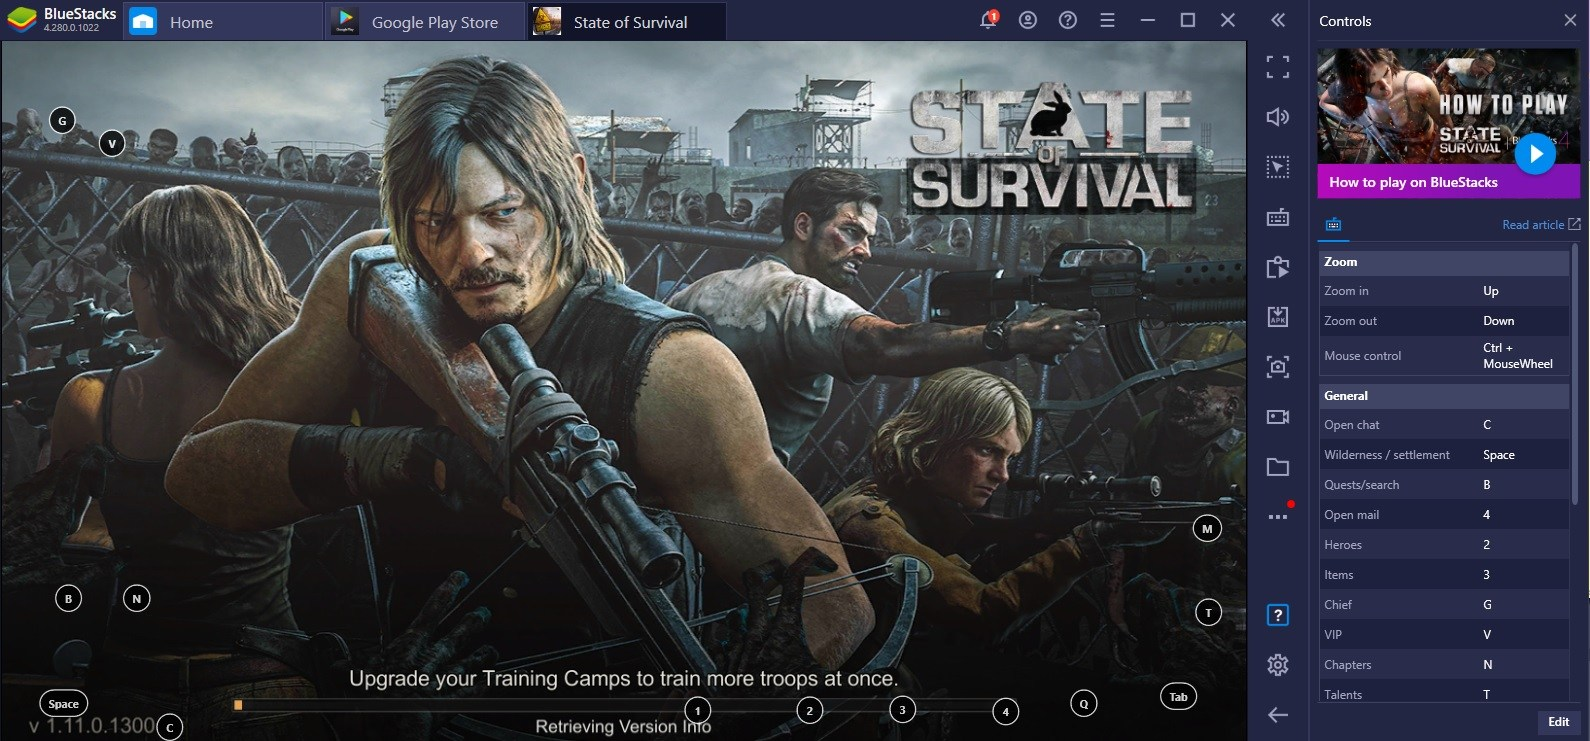 State of Survival x The Walking Dead Collaboration: How to Find Daryl Dixon